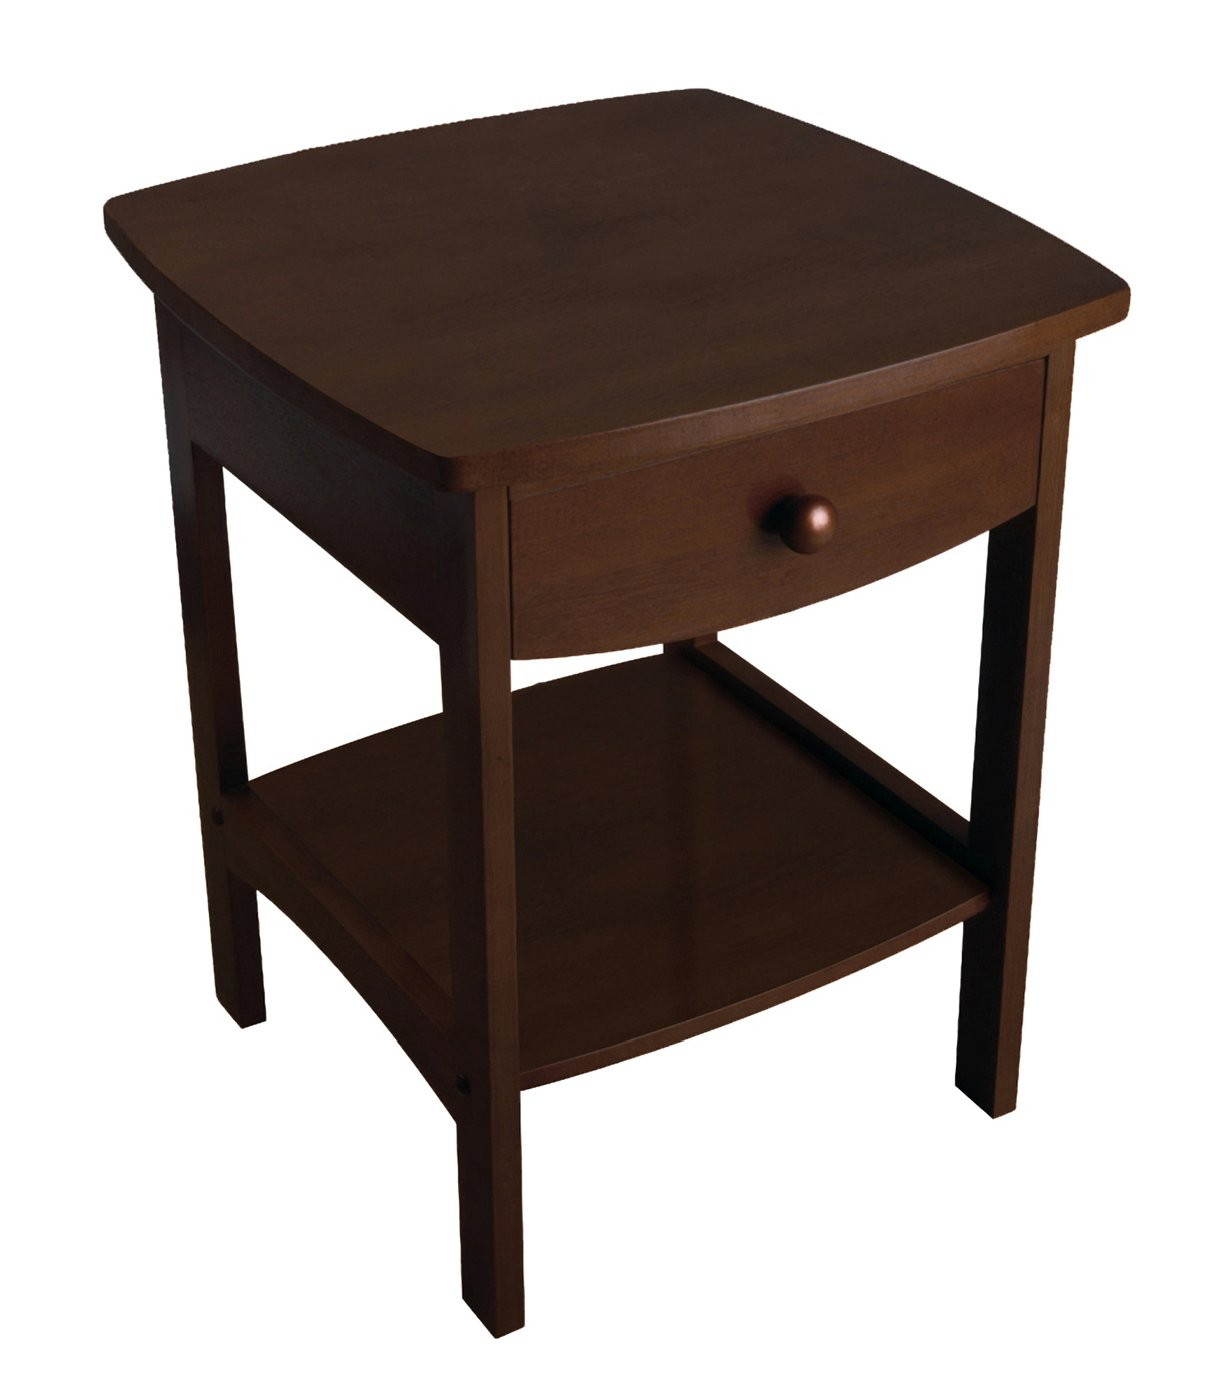 winsome wood claire accent table walnut kitchen block dining plastic frame large counter height room lighting pottery barn chair covers west elm curtains pink butterfly lamp brown